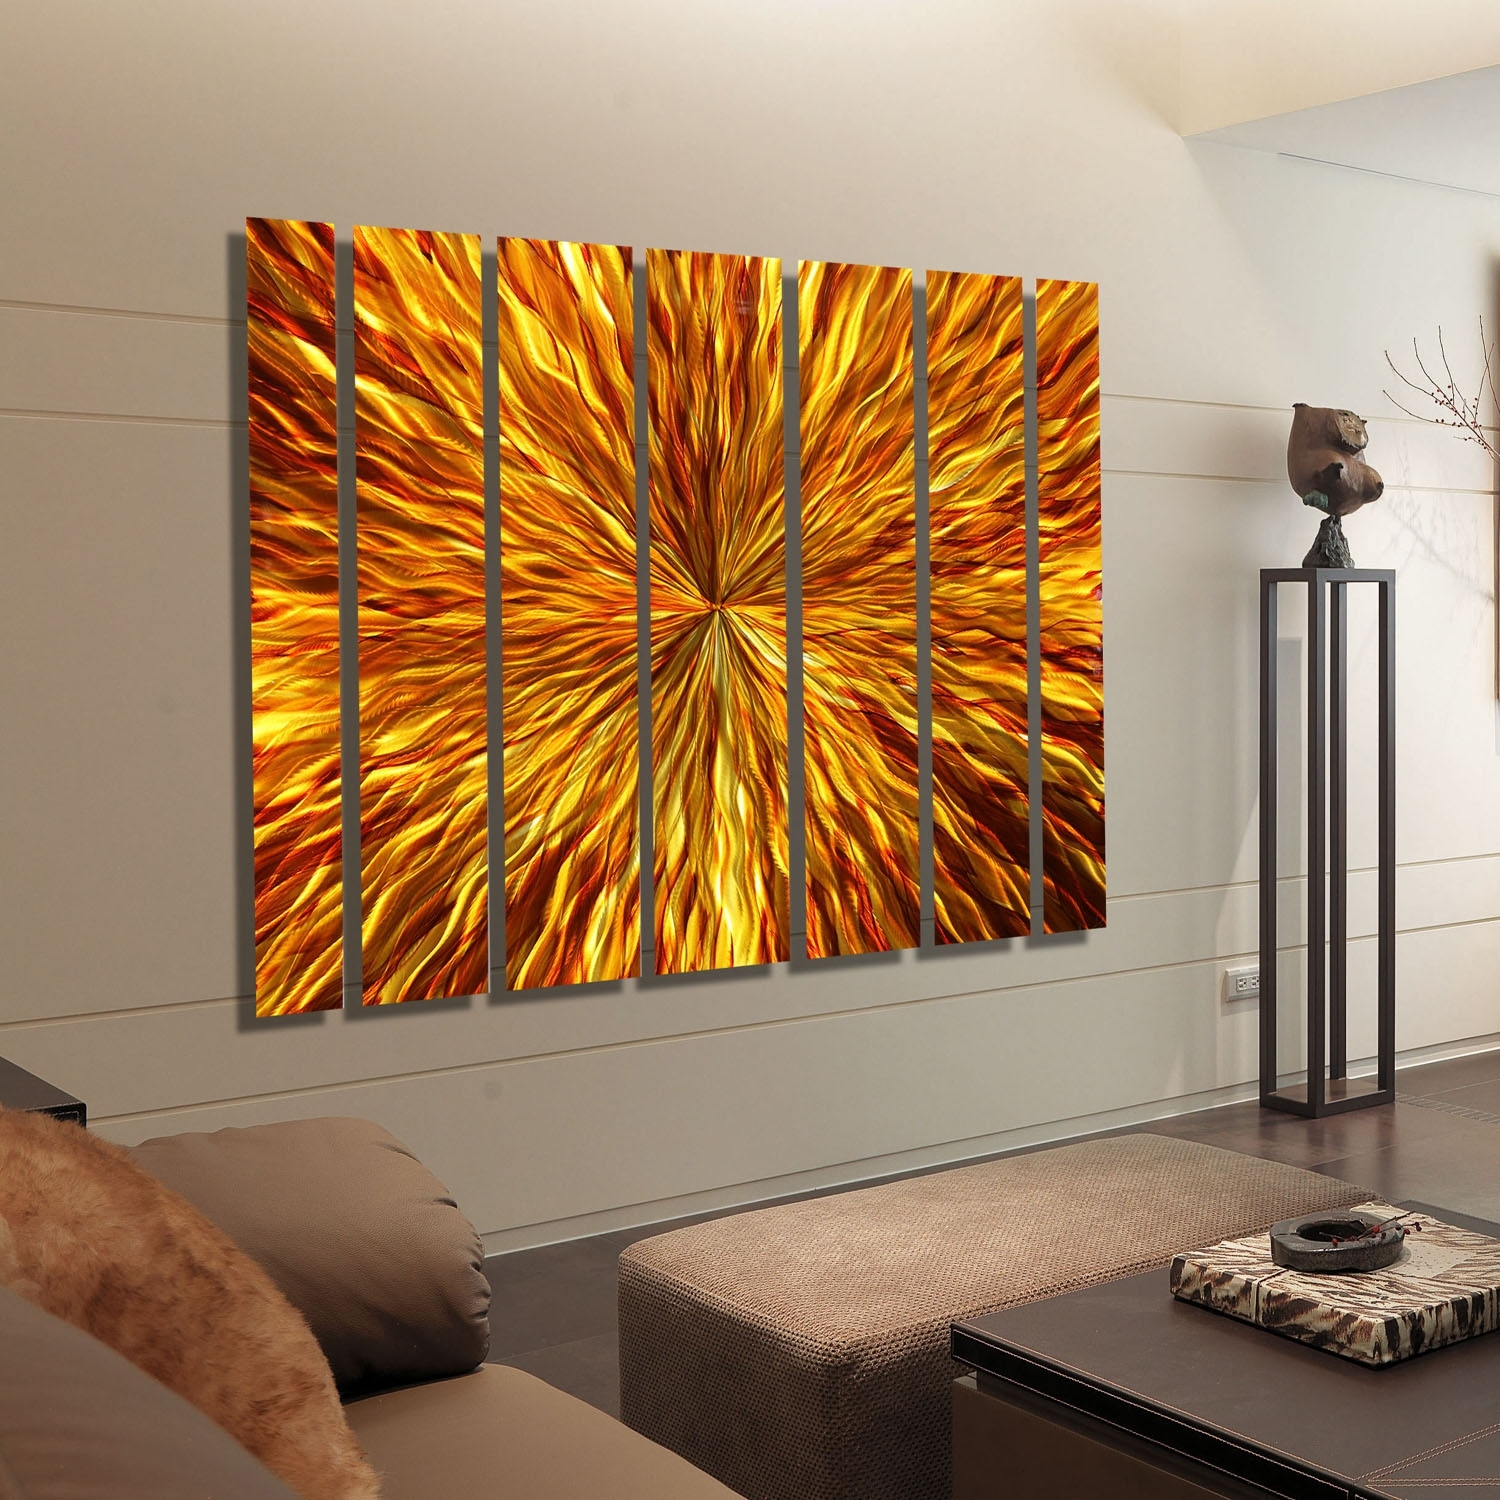 Amber Vortex Xl – Extra Large Modern Metal Wall Artjon Allen With Current Rectangular Wall Accents (View 11 of 15)